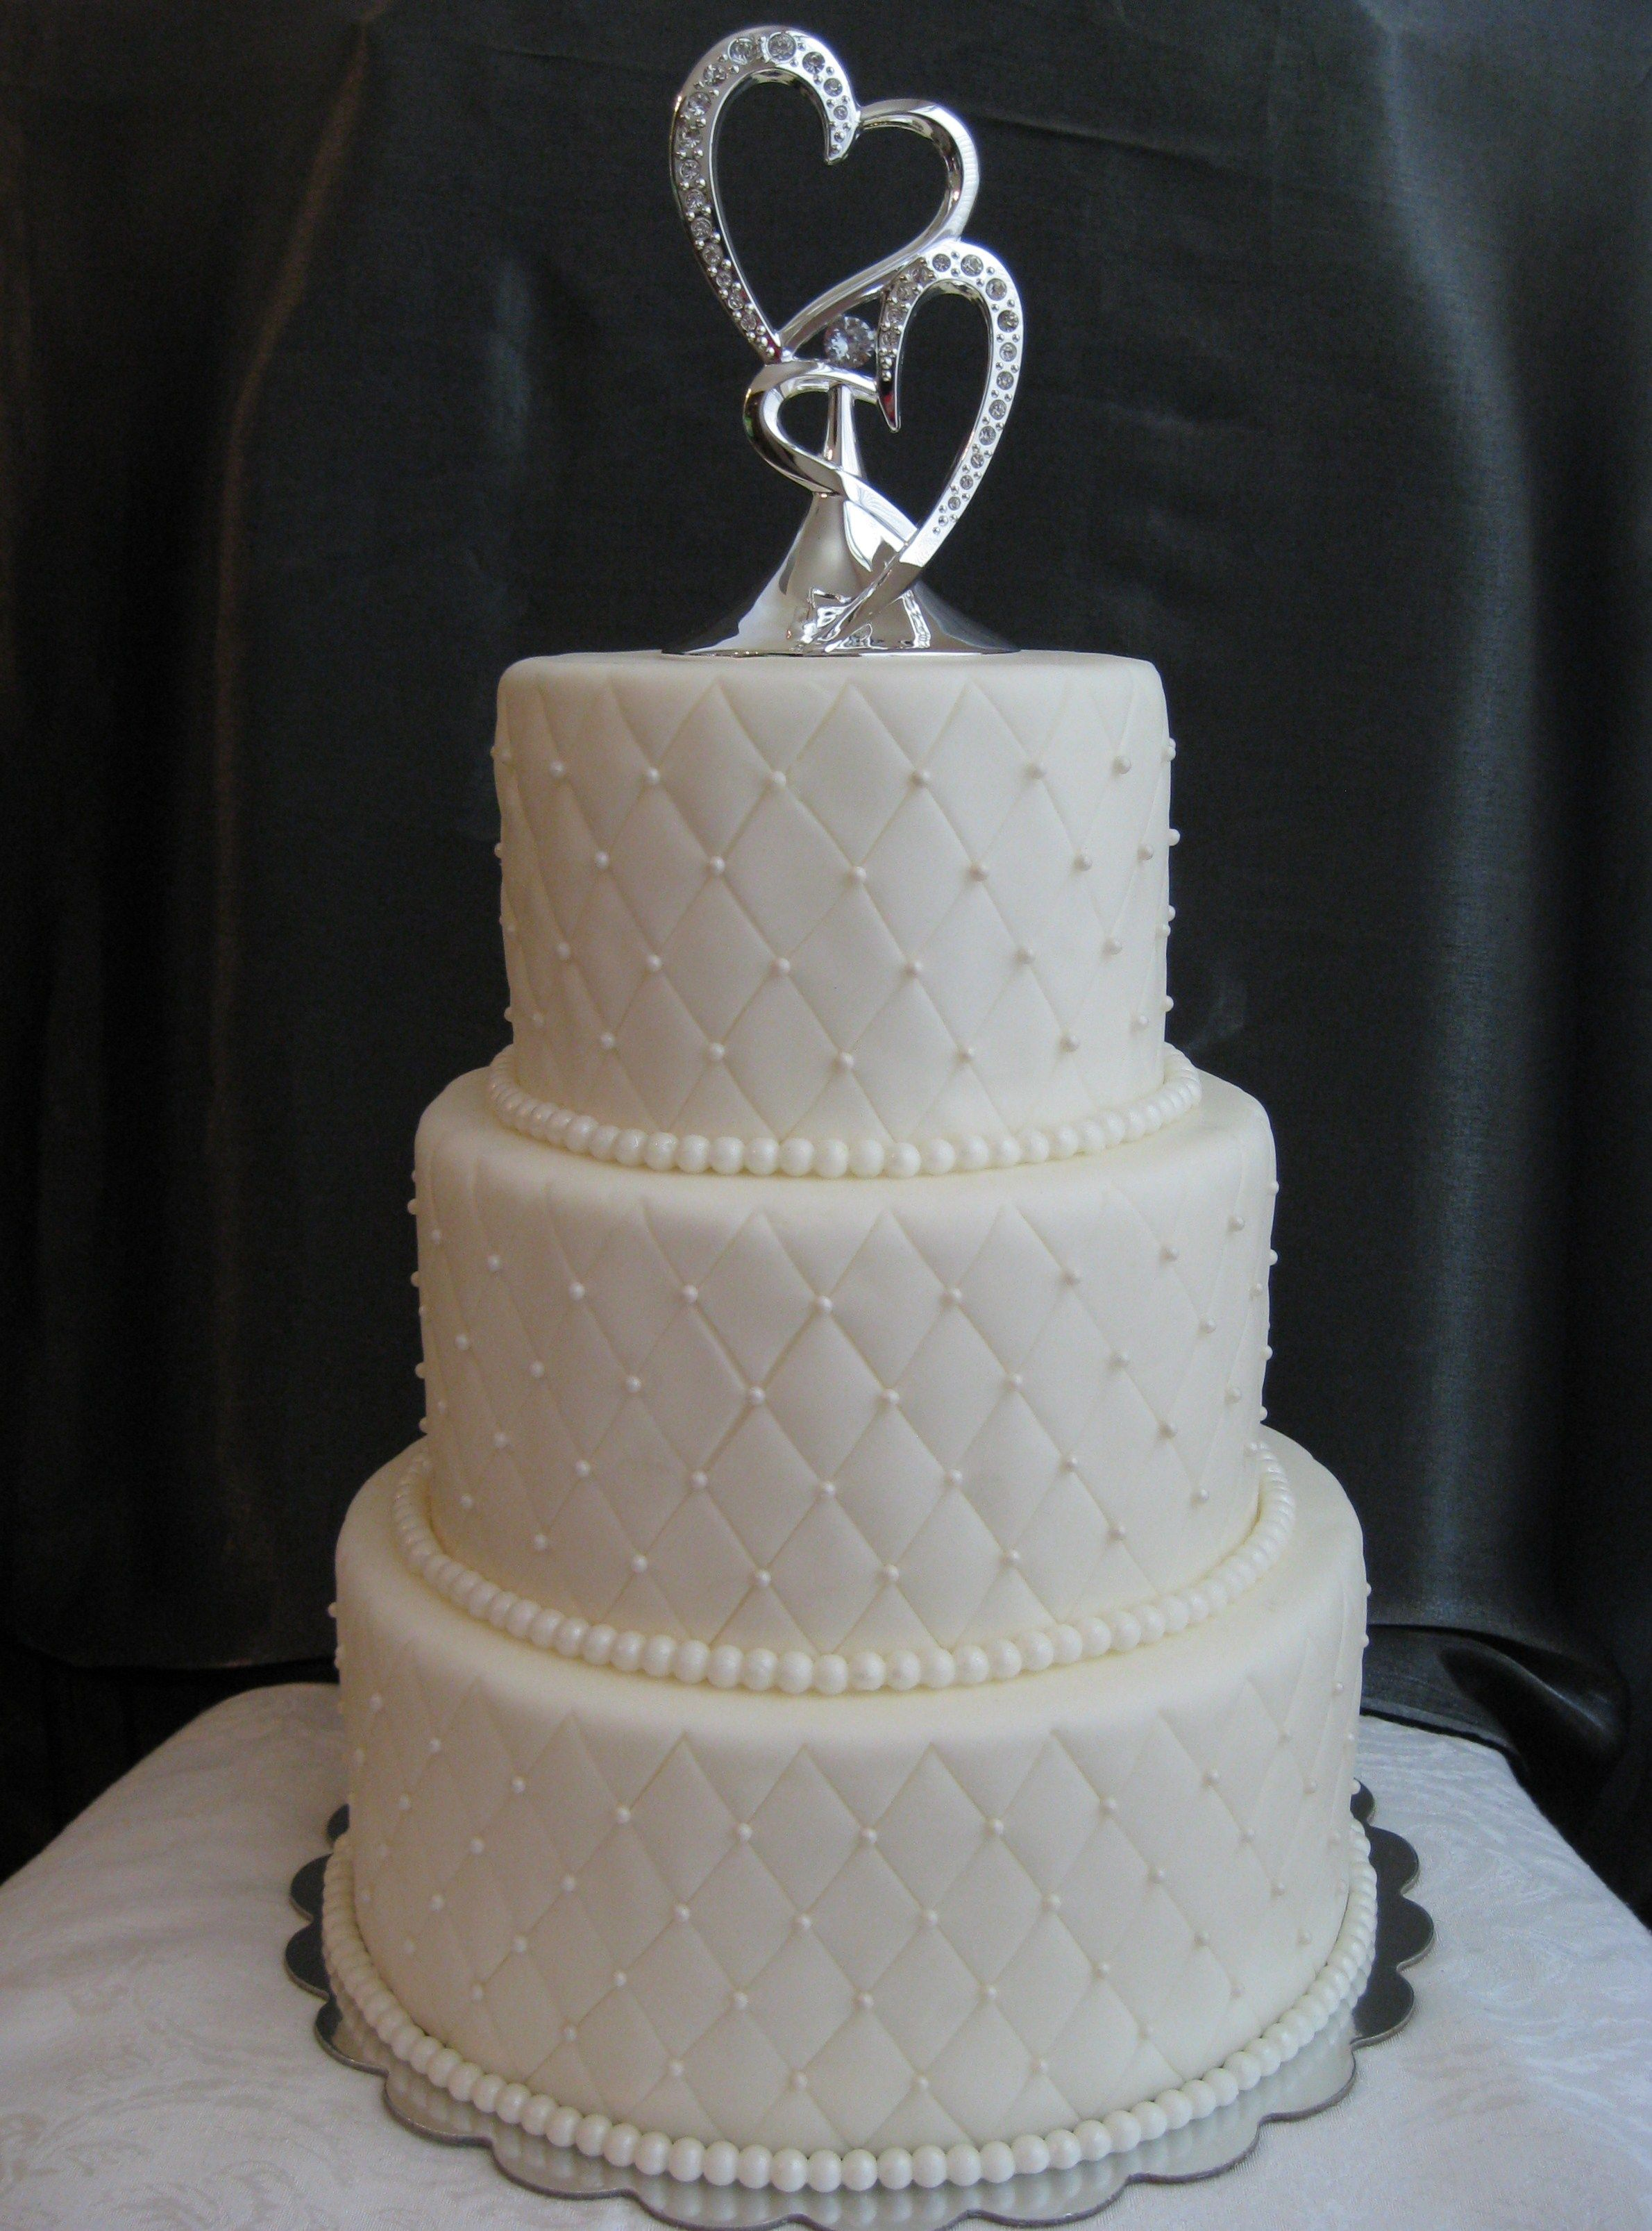 Pin By Janine Alia On Cakes Entertaining Wedding Cake Quilted Buttercream Wedding Cake Wedding Cake Pattern